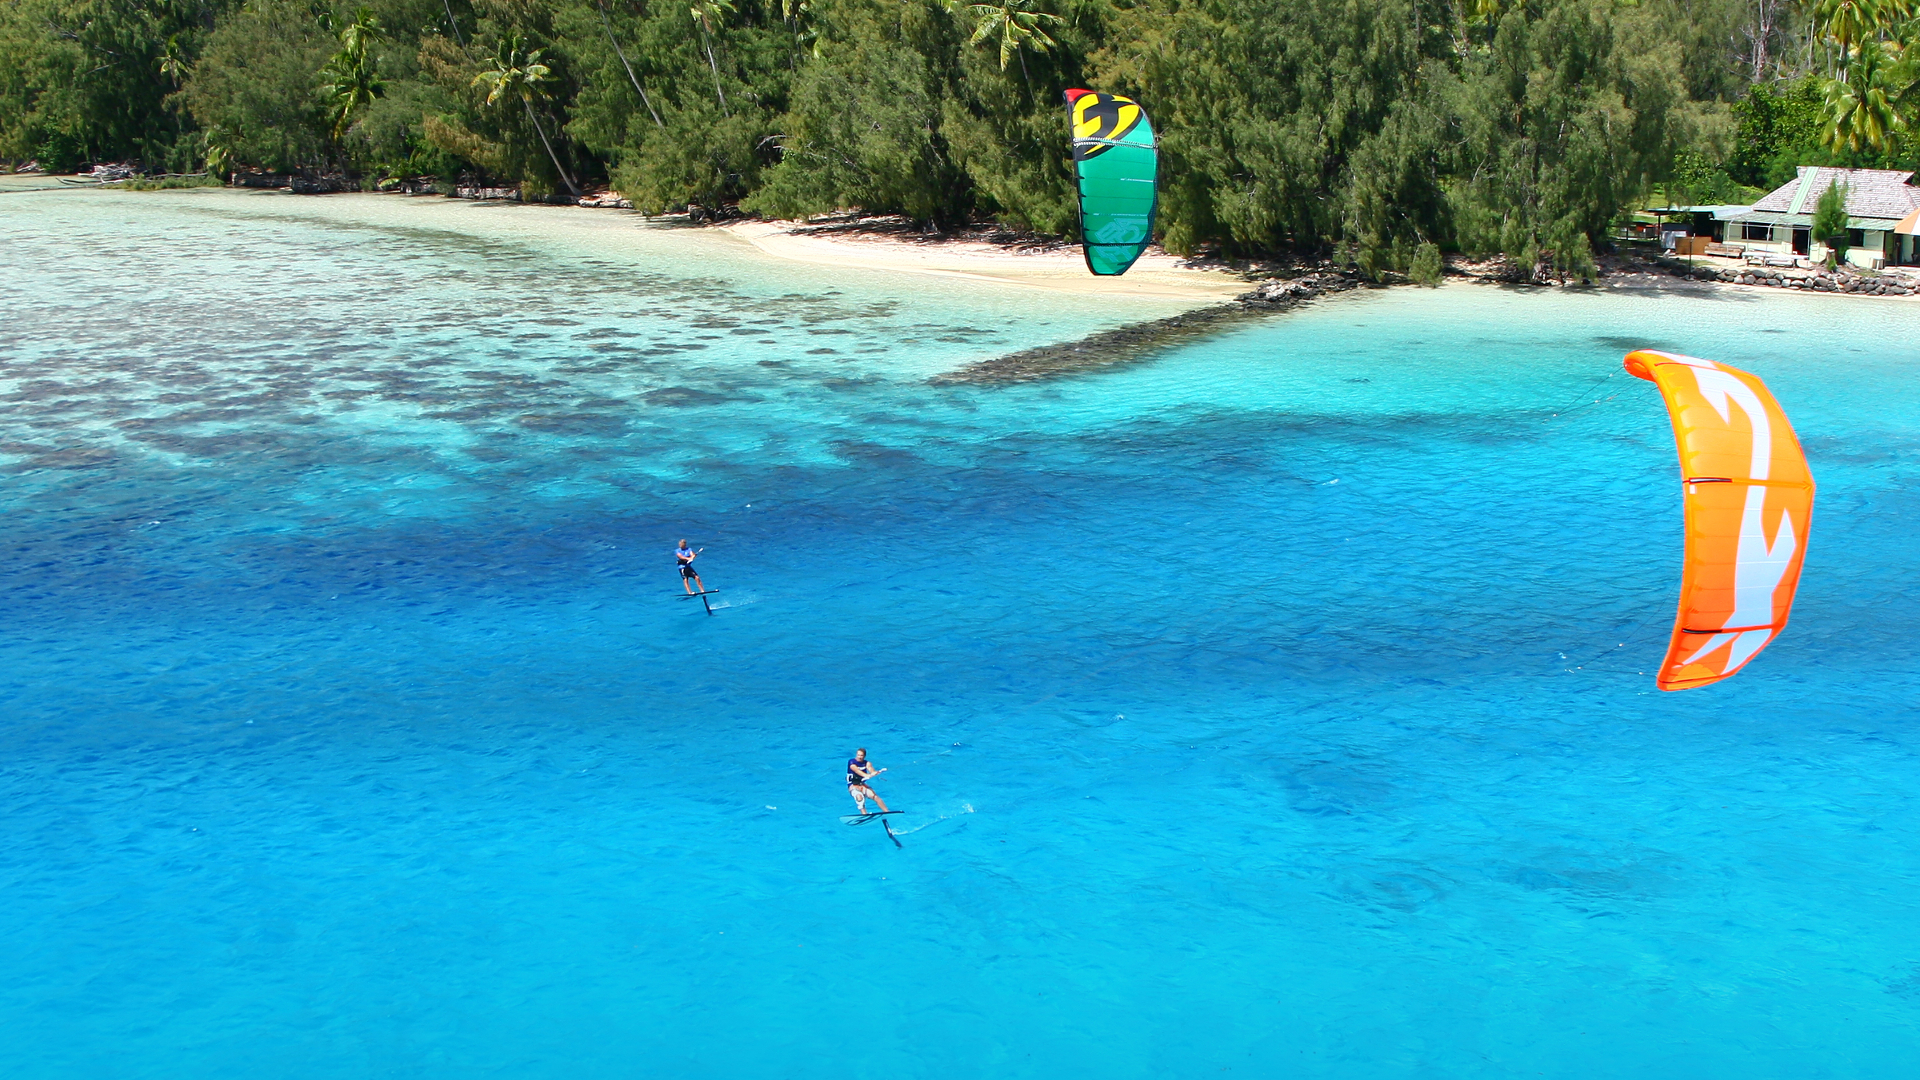 kitesurf wallpaper image - Cruising on the foilboards with the 2015 F-One Bandit - kitesurfing in tropical waters - in resolution: High Definition - HD 16:9 1920 X 1080